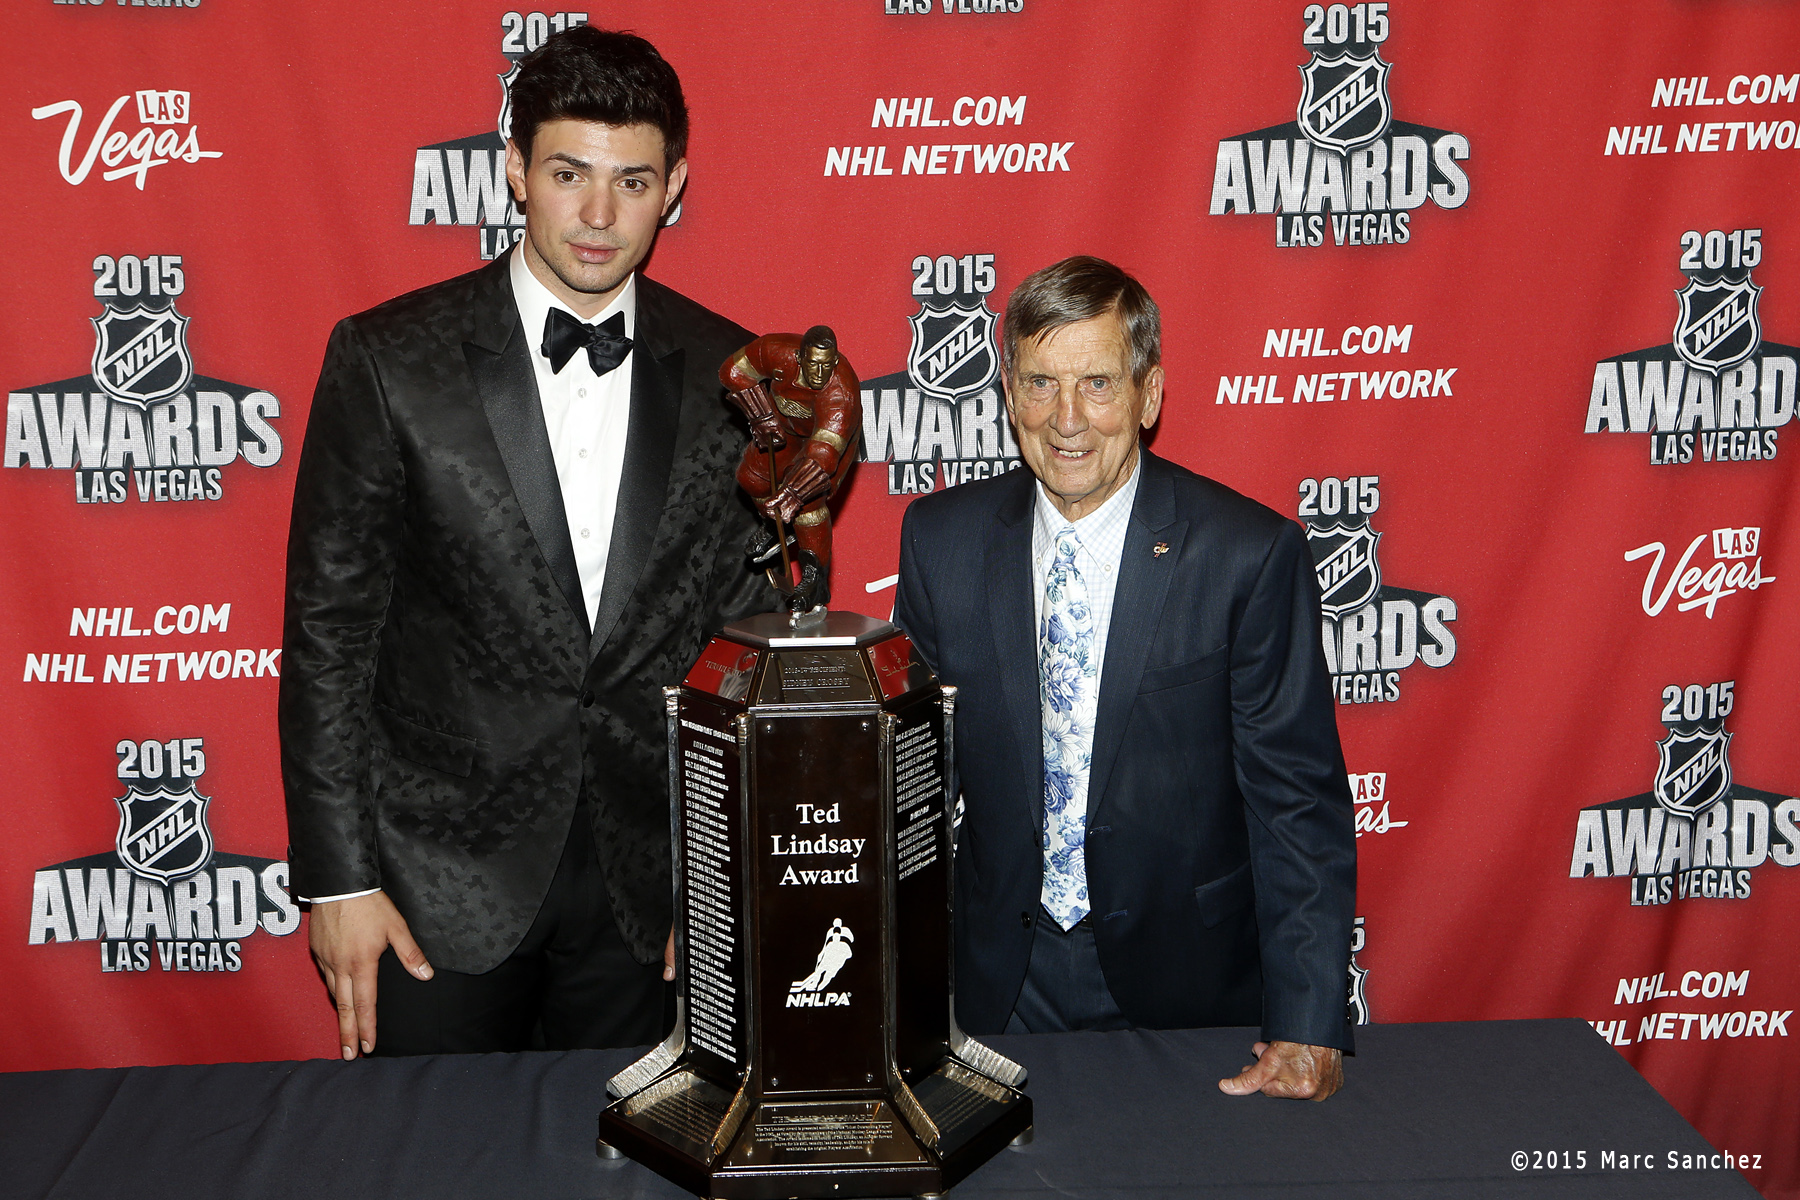 2015 June 24:  Carey Price of the Montreal Canadiens poses with Ted Lindsay after winning the Ted Lindsay Award at the the 2015 NHL Awards at the MGM Grand Garden Arena in Las Vegas, Nevada.